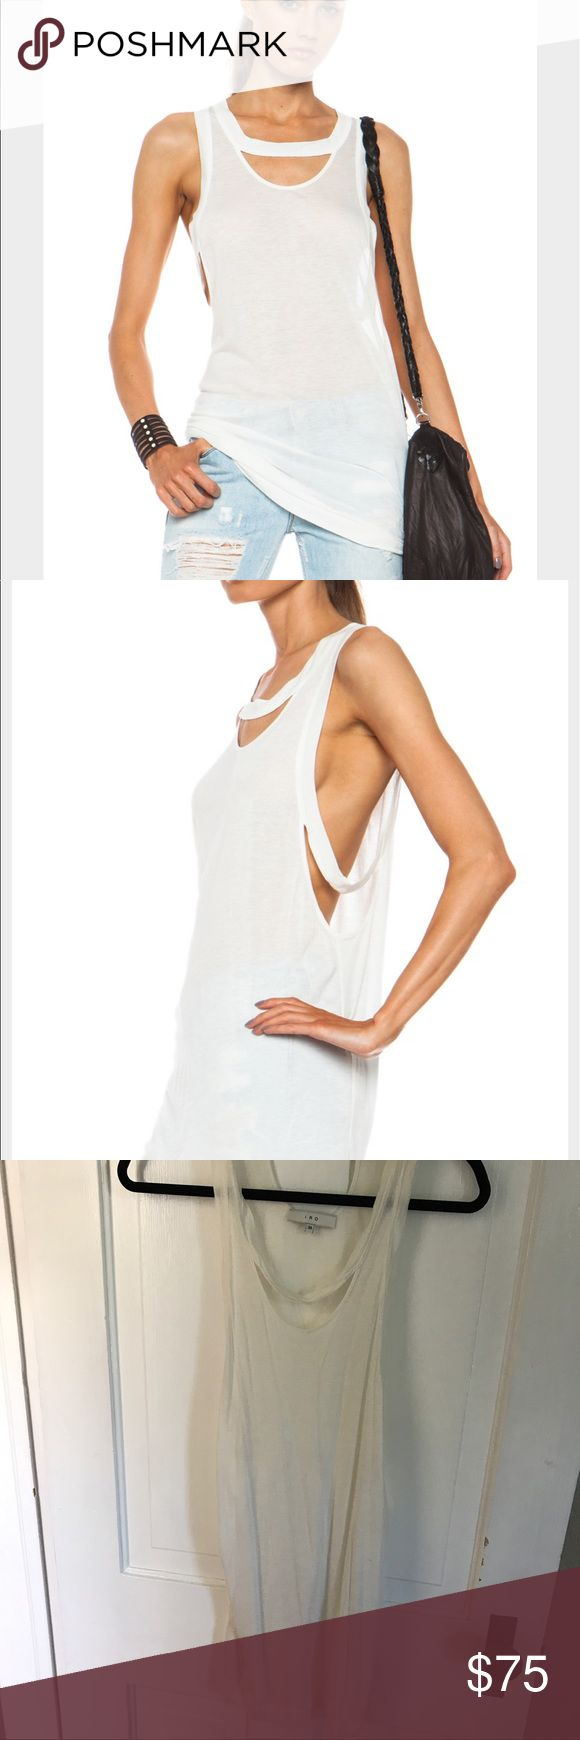 IRO Wade White Viscose Blend Tank IRO Wade tank in natural white. 88% Viscose 12% silk. General wear to fabric. Made in Romania. Cut out detail on front, sides and back. SOLD OUT 🔍 Retailed at $341 on FRWD.com. Fits women sized Small-Medium. EU38. IRO Tops Tank Tops